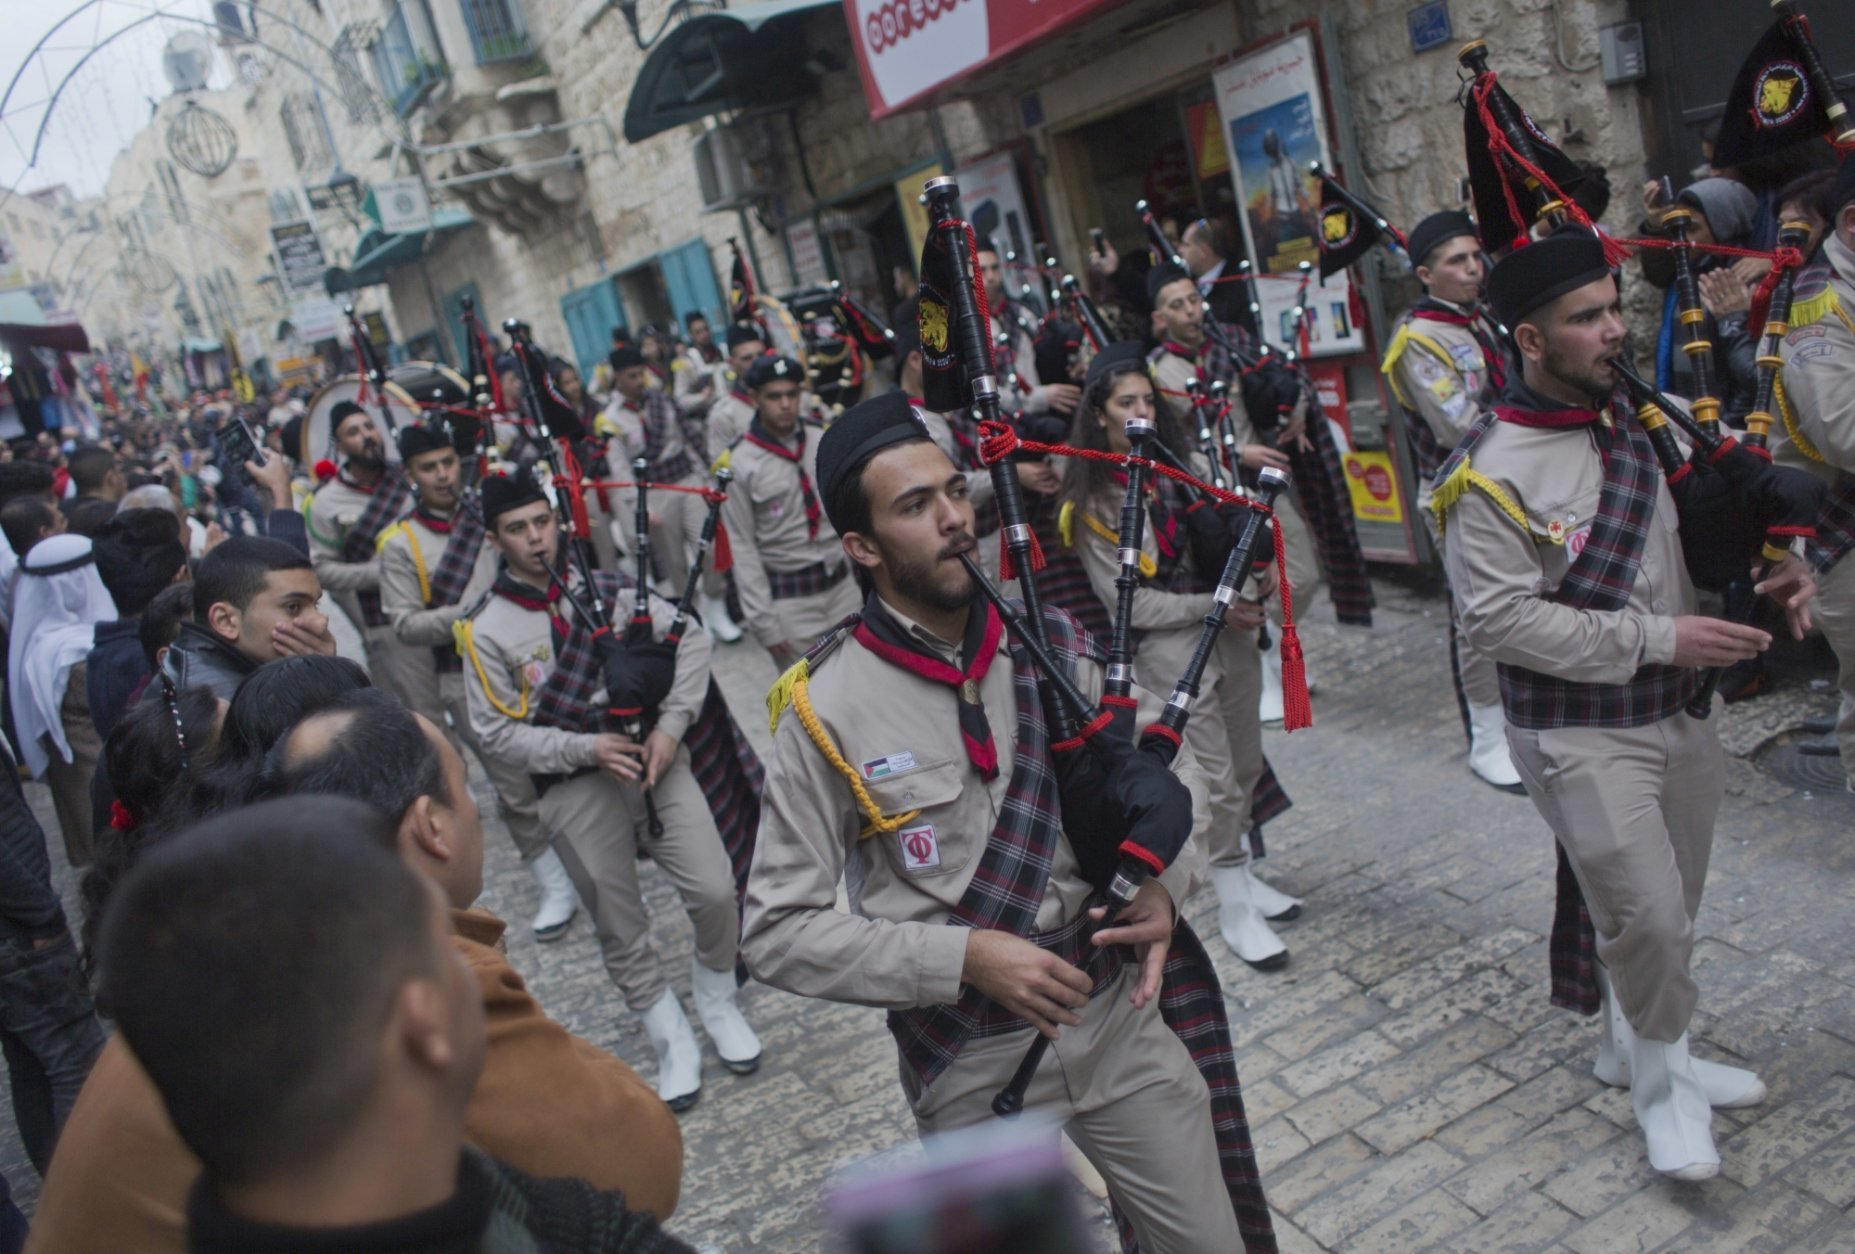 Palestinian scouts march through town ahead of midnight Mass at the Church of the Nativity, traditionally recognized by Christians to be the birthplace of Jesus Christ, in the West Bank city of Bethlehem, Monday, Dec. 24, 2018. Palestinians are preparing to host pilgrims from around the world in celebrating Christmas in the West Bank city of Bethlehem. (AP Photo/Nasser Nasser)